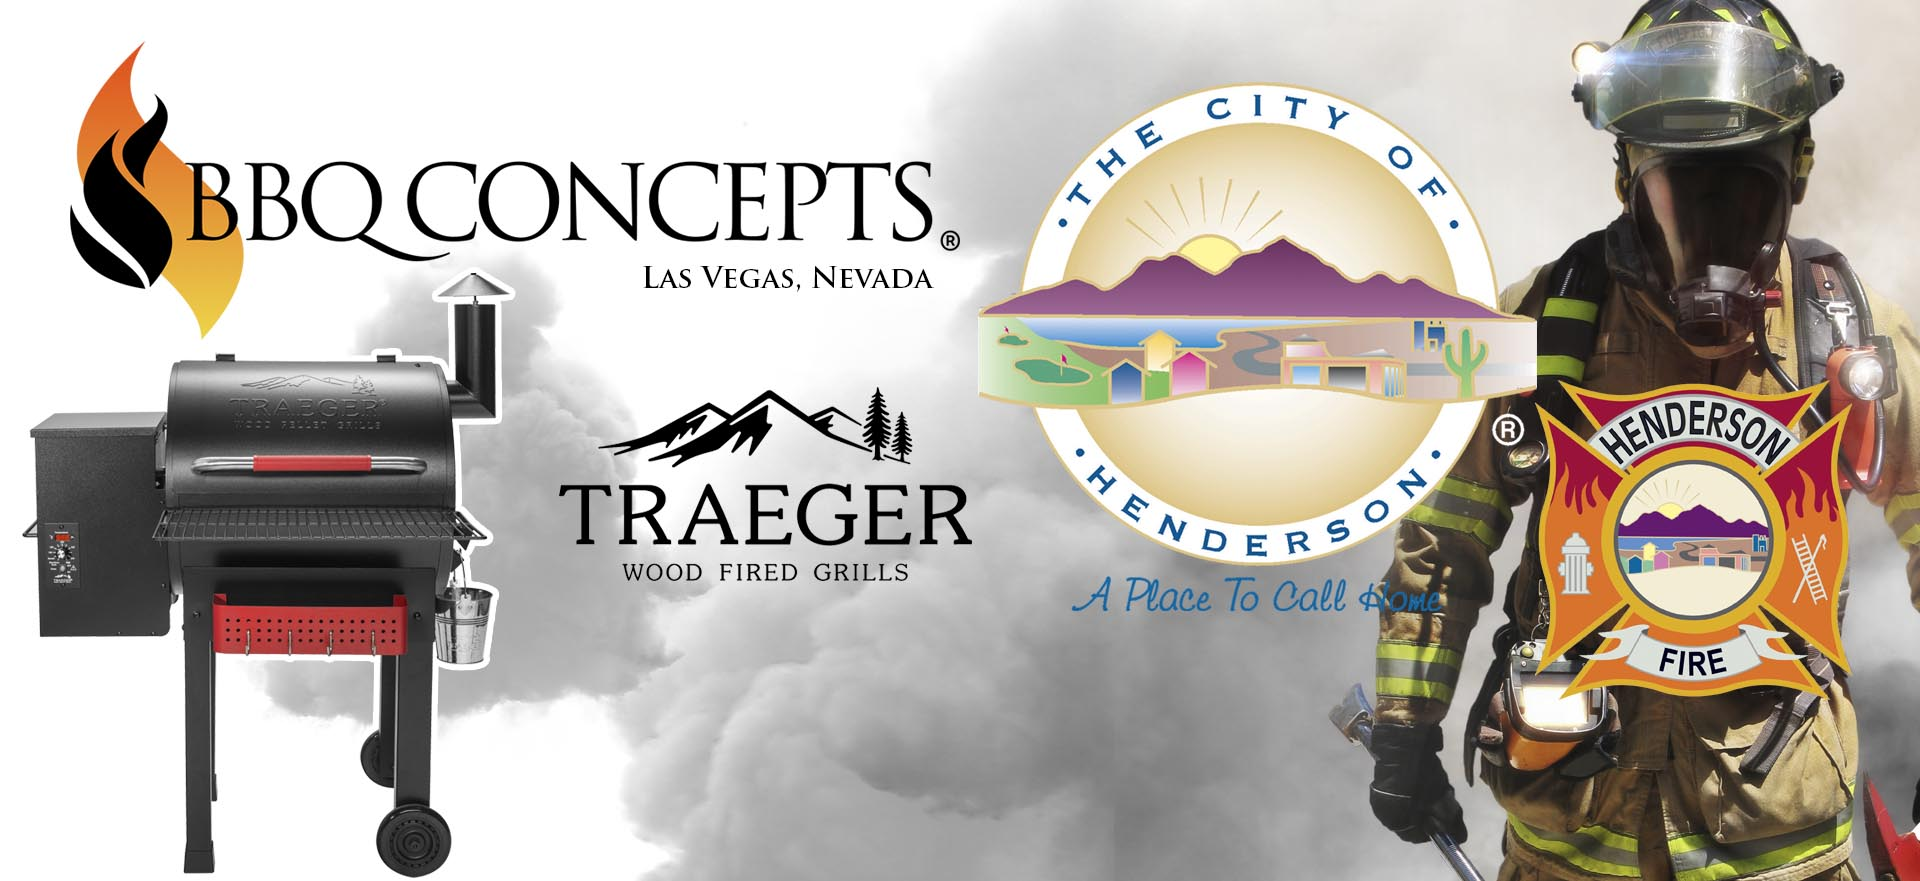 BBQ Concepts & Traeger Fire Fighter Appreciation Program